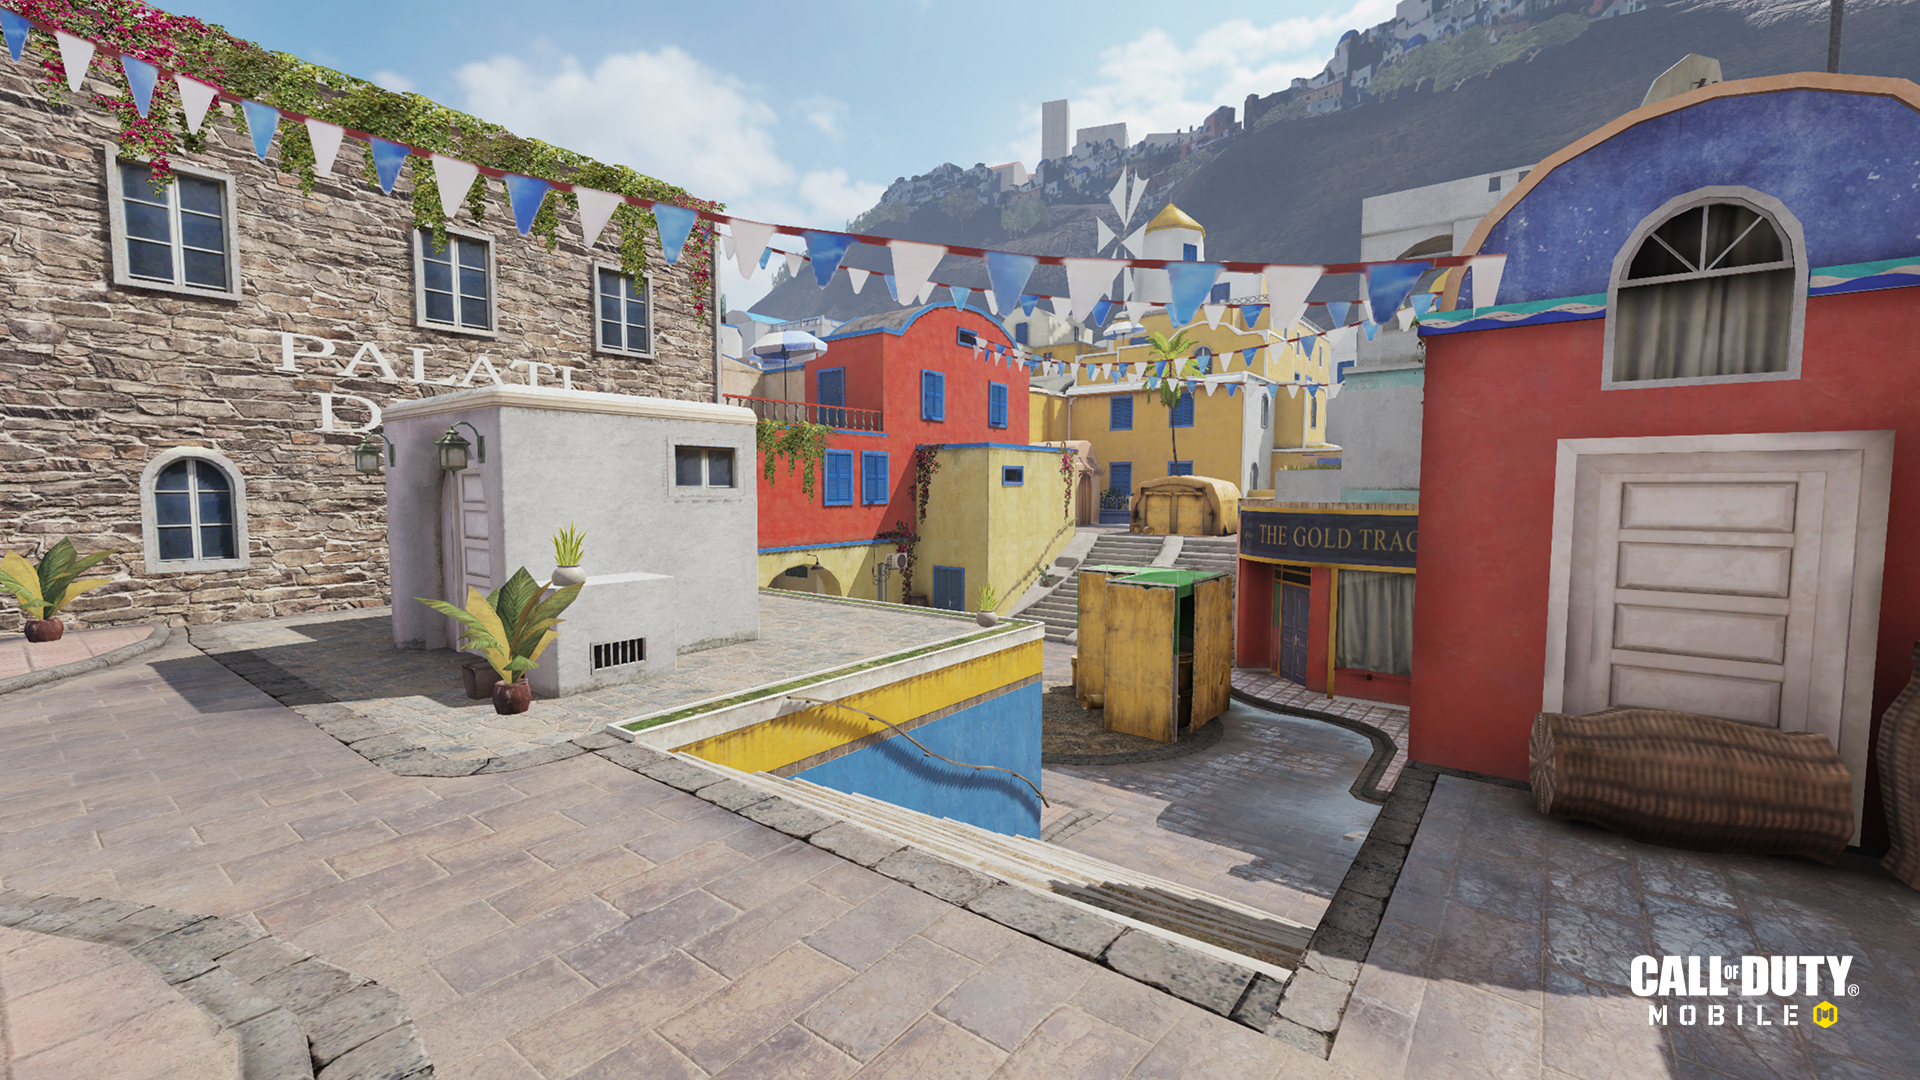 Call of Duty: Mobile to add new map called Tunisia